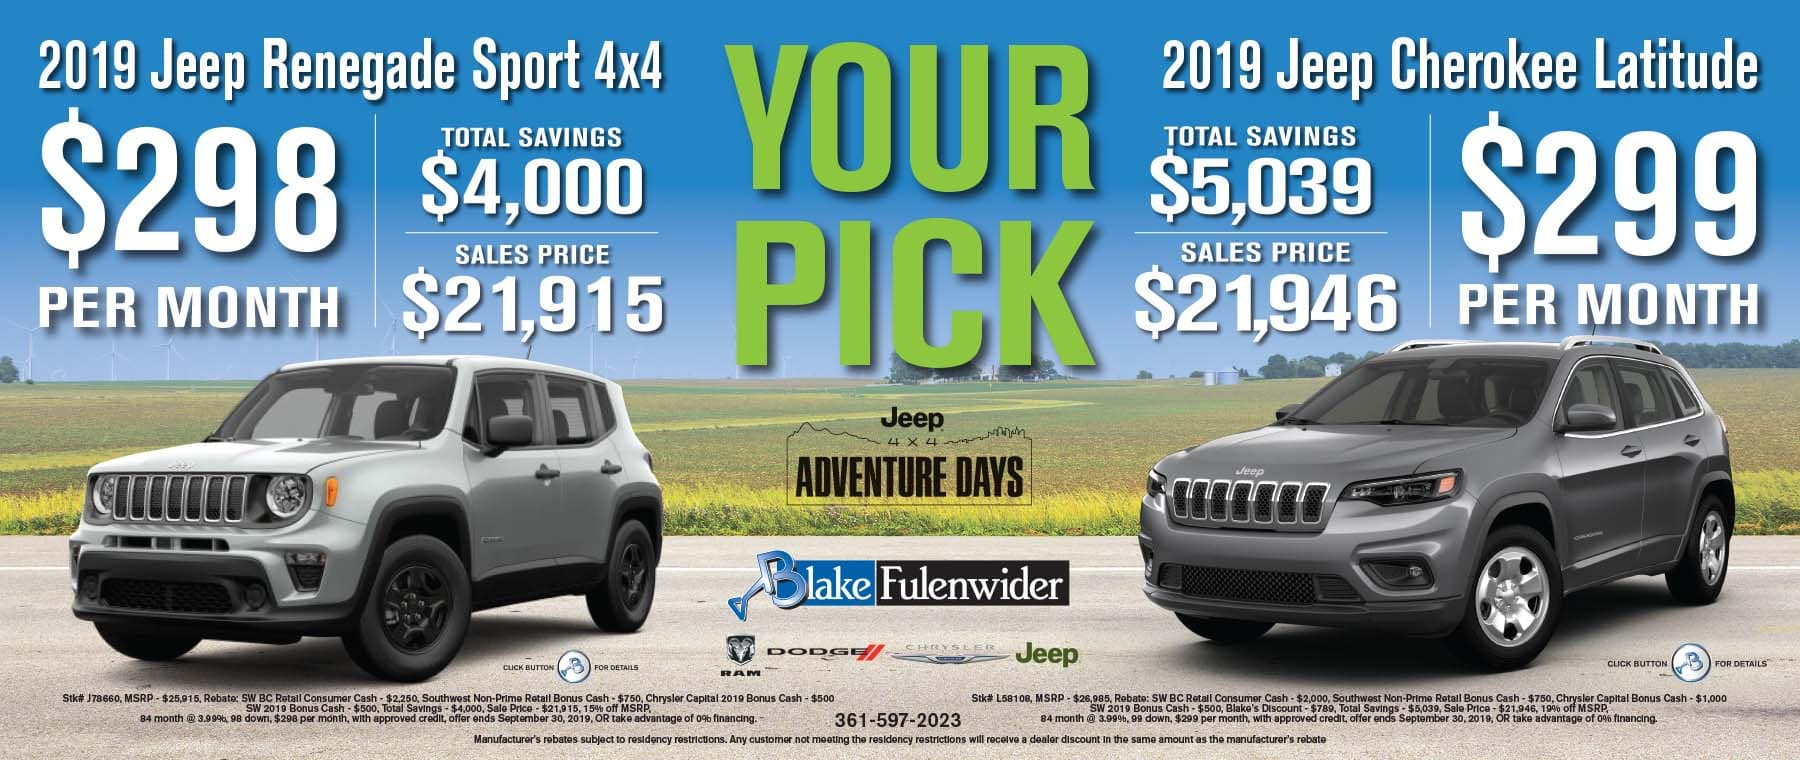 About Our Dealership | Blake Fulenwider Ram Chrysler Dodge Jeep